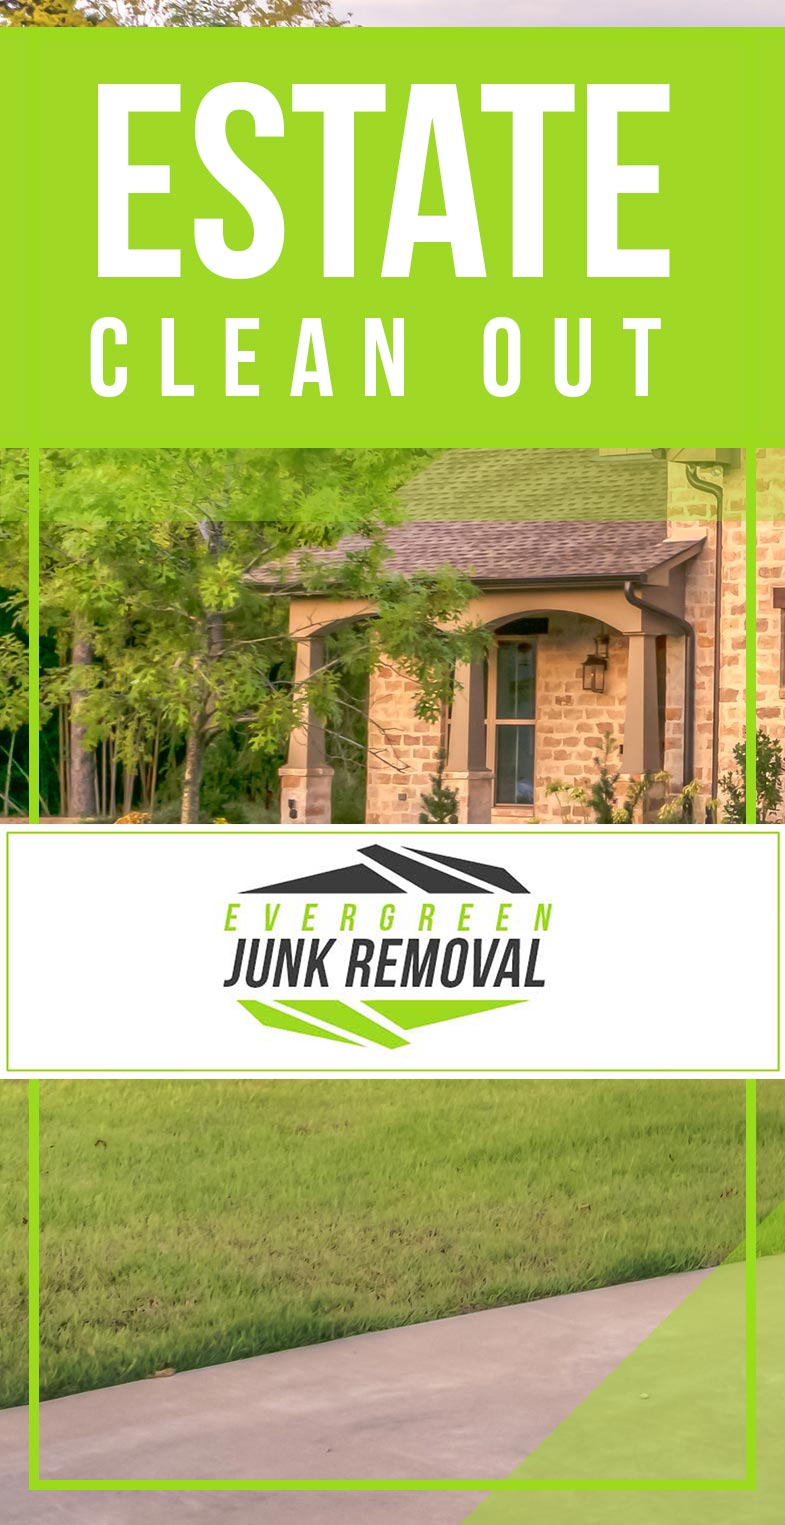 Junk Removal Lake Park Estate Clean Out